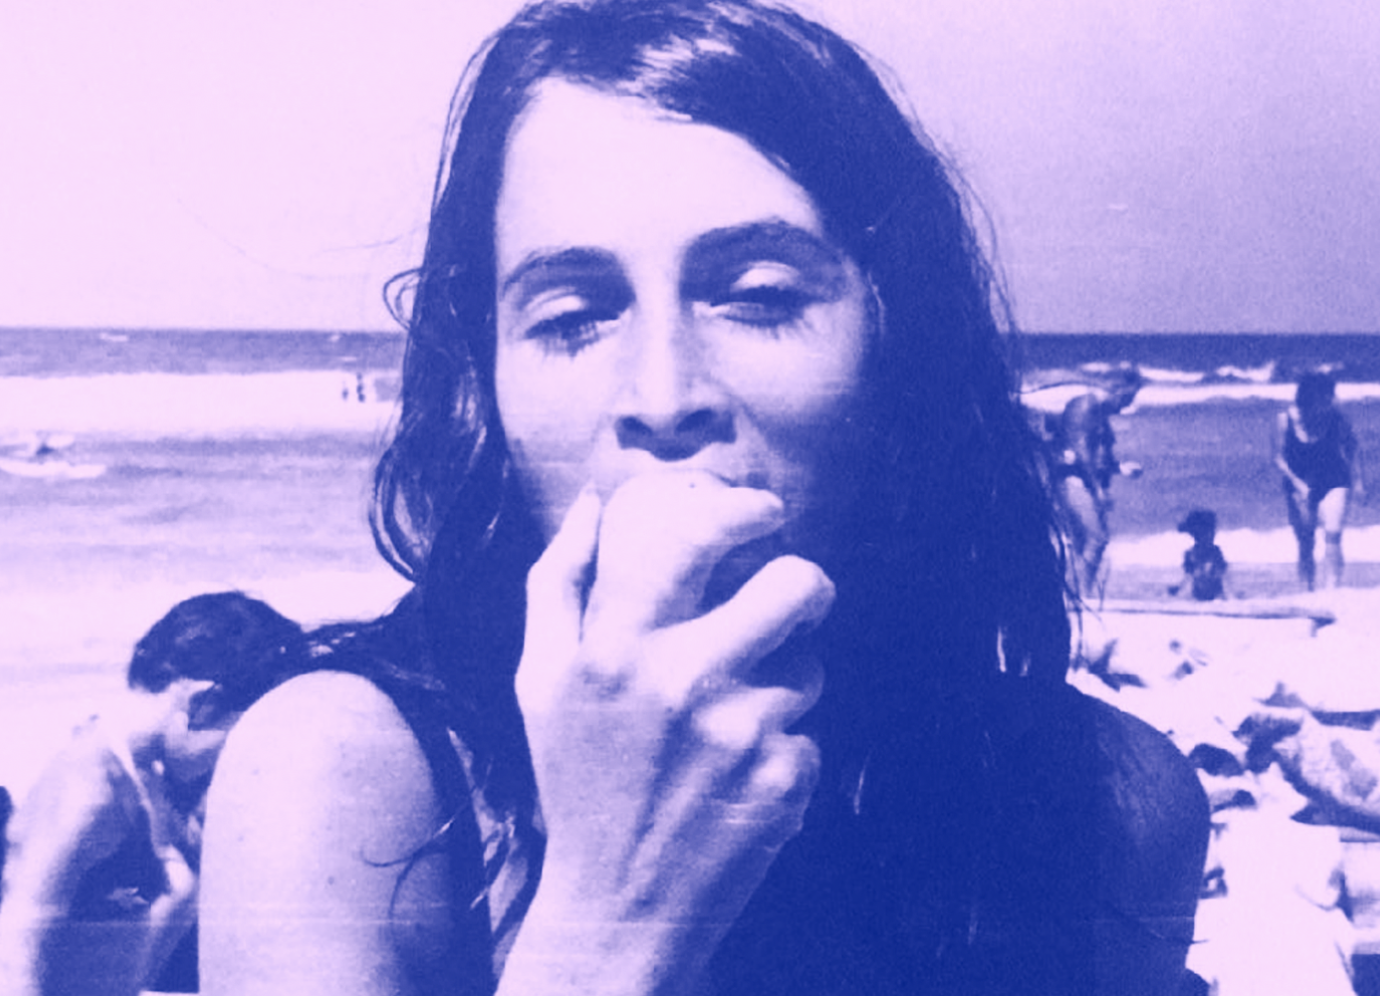 A purple / blue duotone image of Nechama Rivlin on the beach when she was in her twenties or thirties